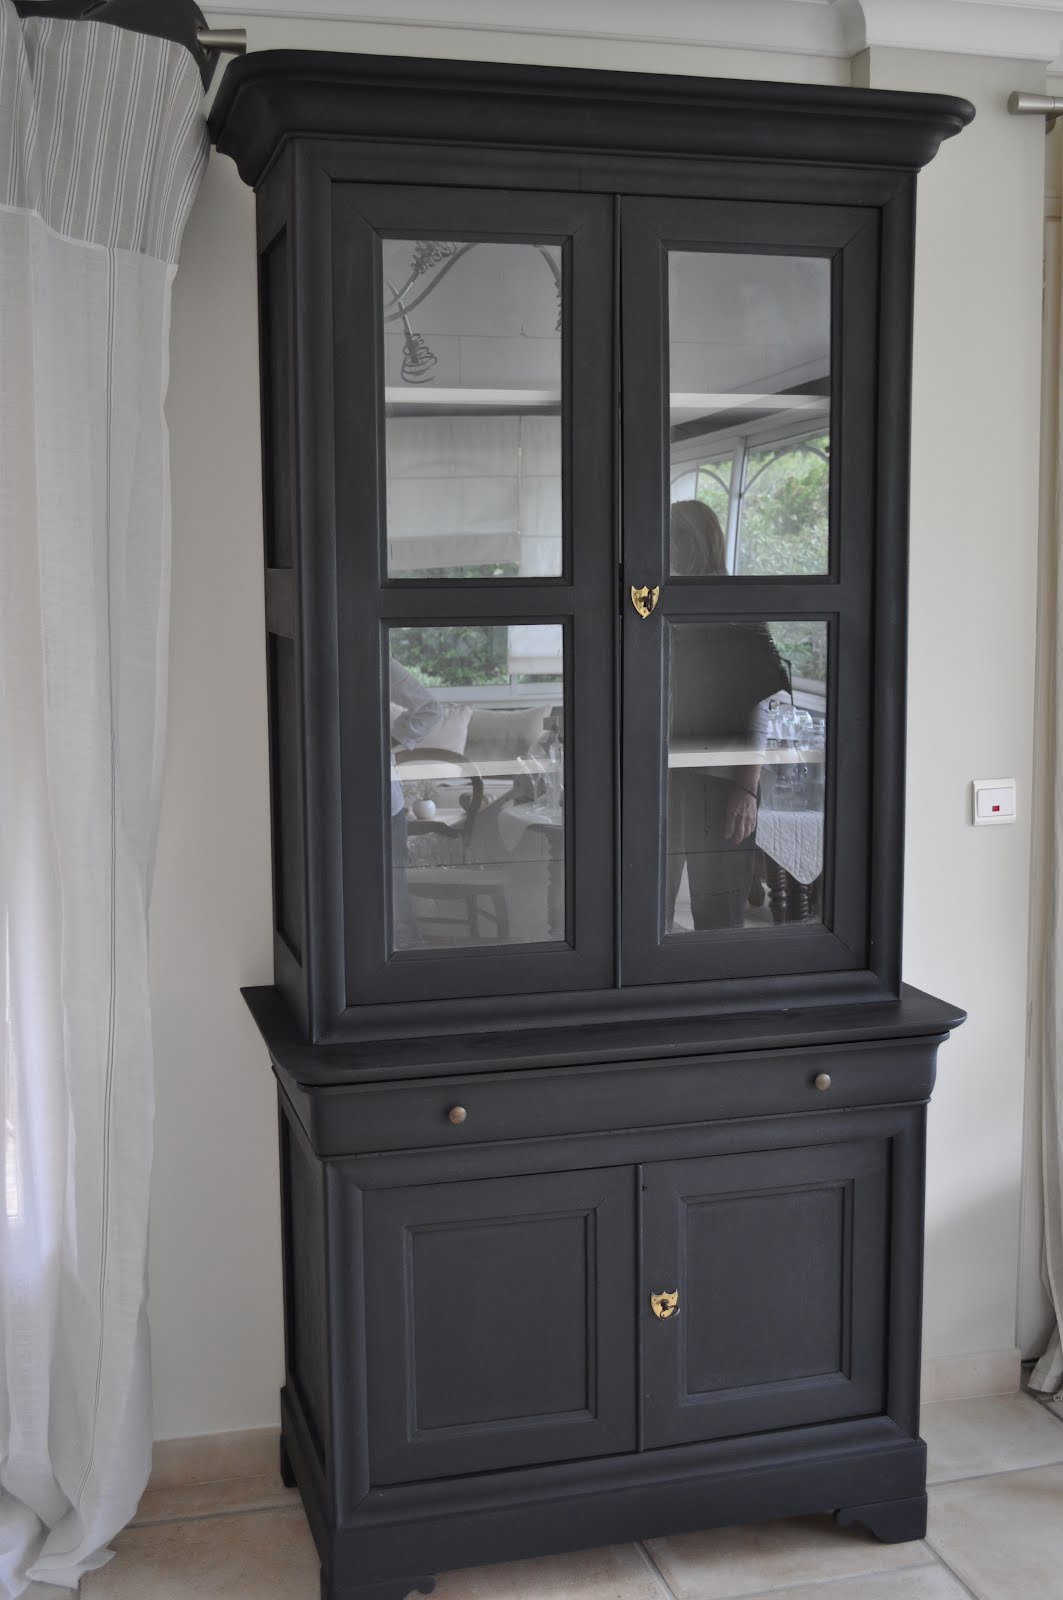 meuble ancien peint en noir top chez ebeniste meubles peints with meuble ancien peint en noir. Black Bedroom Furniture Sets. Home Design Ideas